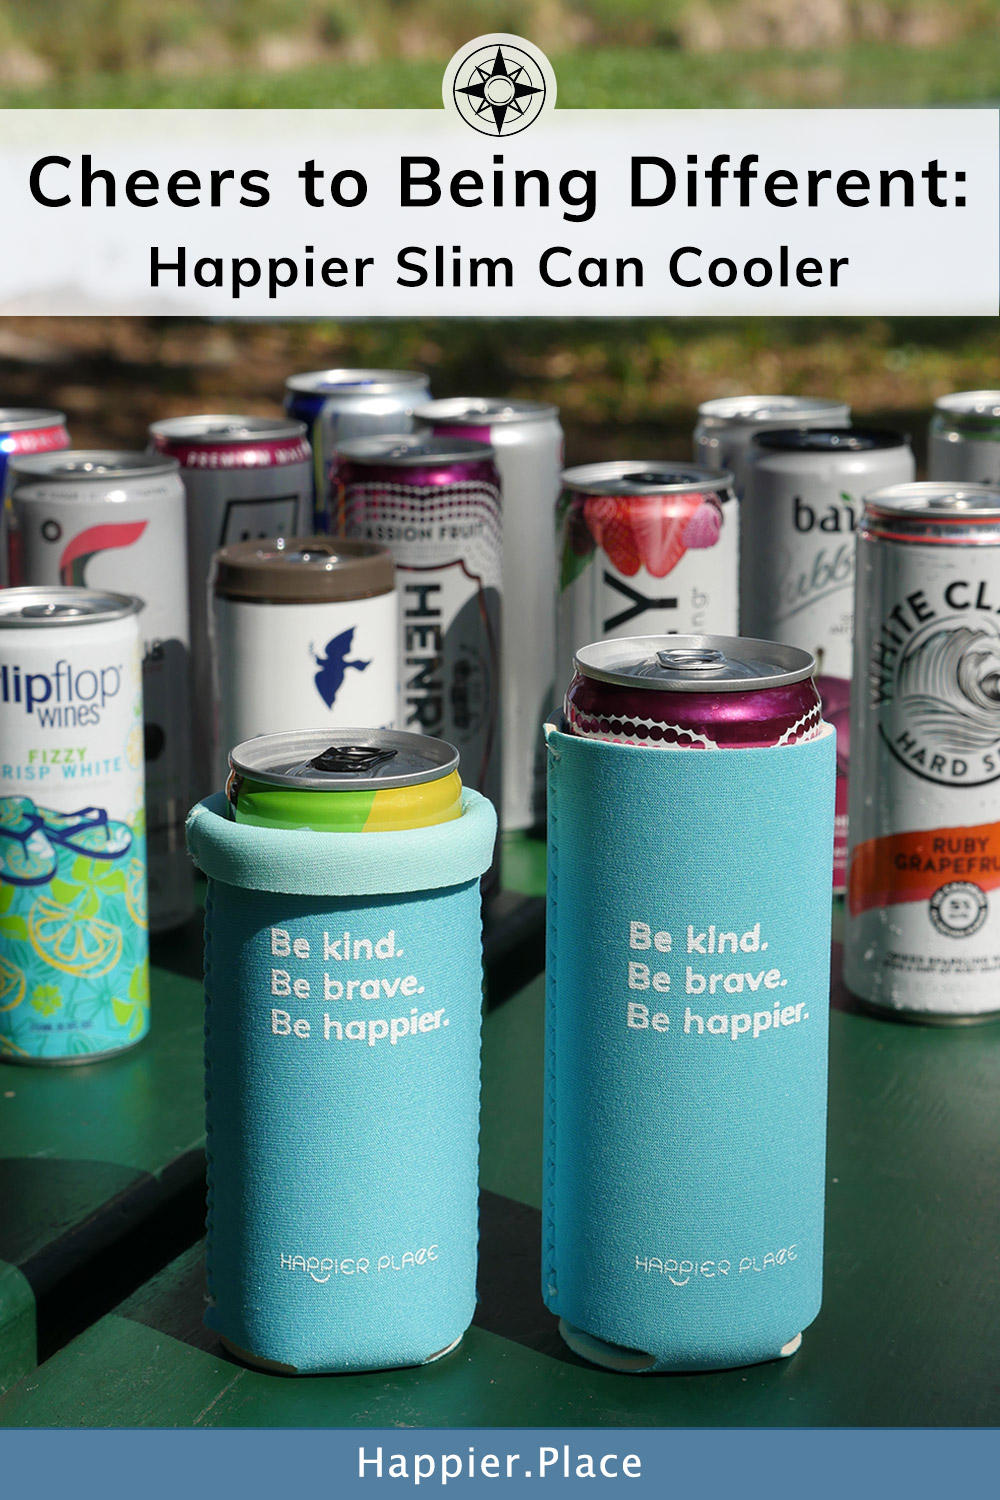 Cheers to being different: the Happier Slim Can Cooler for cool drinks and for making the world a happier place with its inspirational quote. 